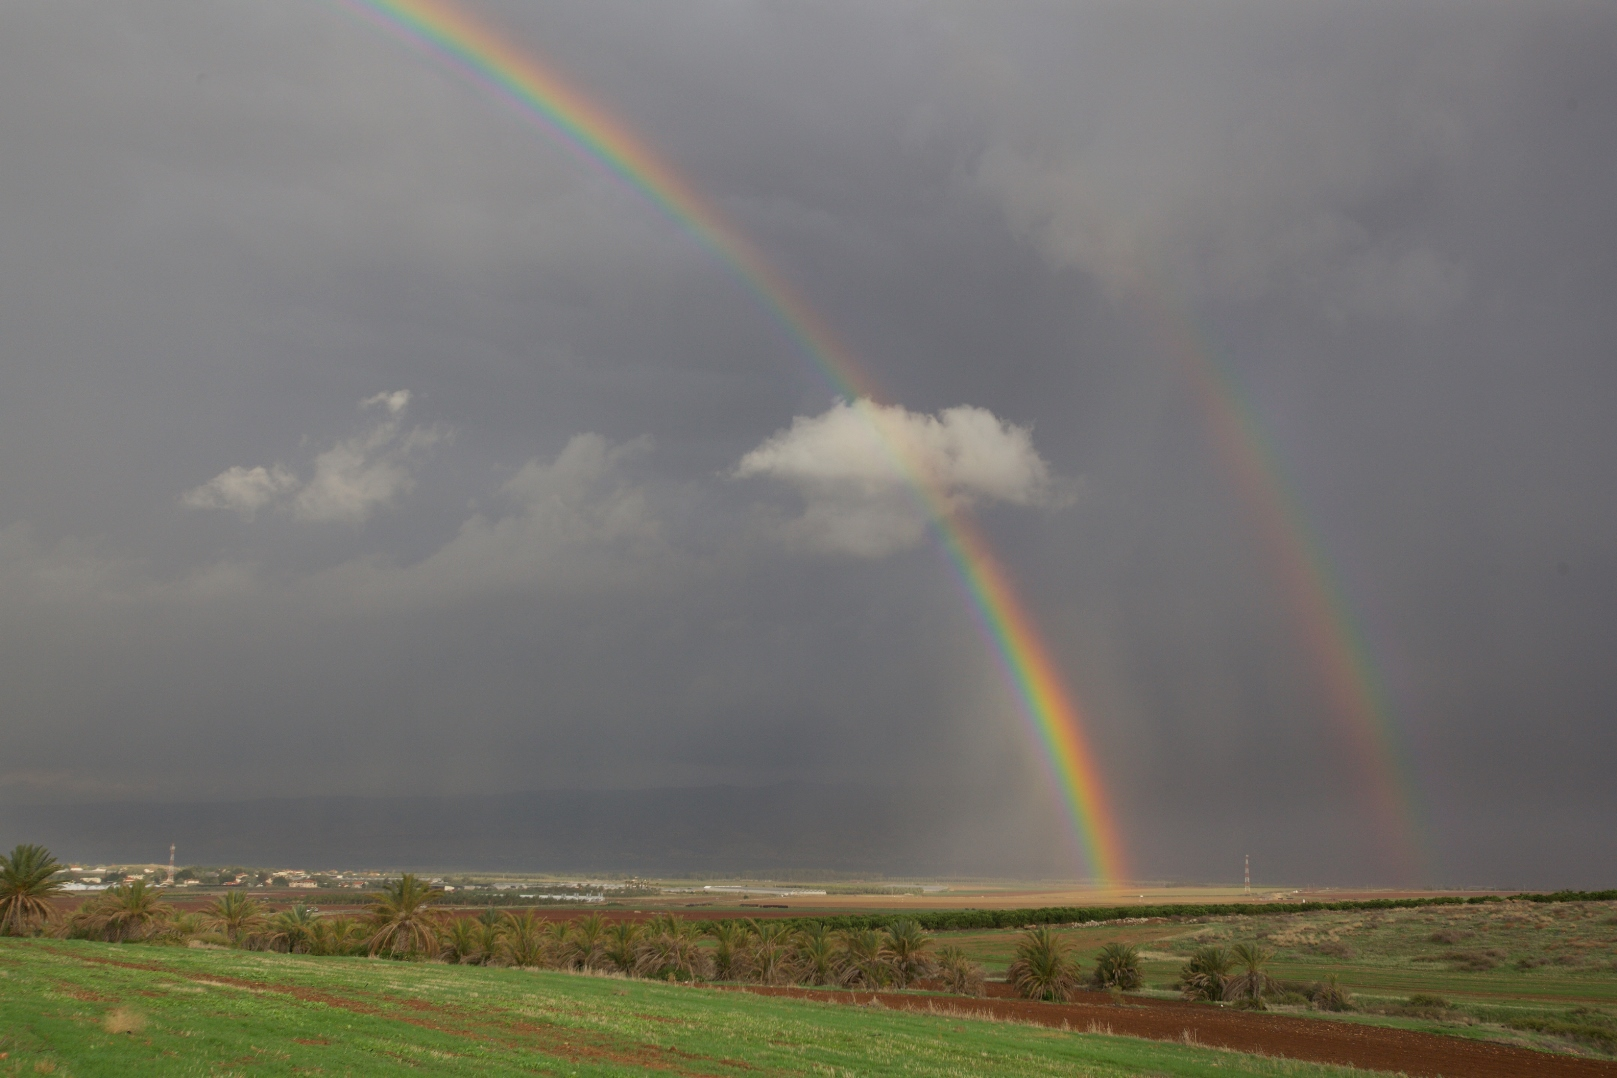 A double rainbow over the Beit She'an Valley, November 21, 2014. Photo by Photo by Doron Horowitz/FLASH90